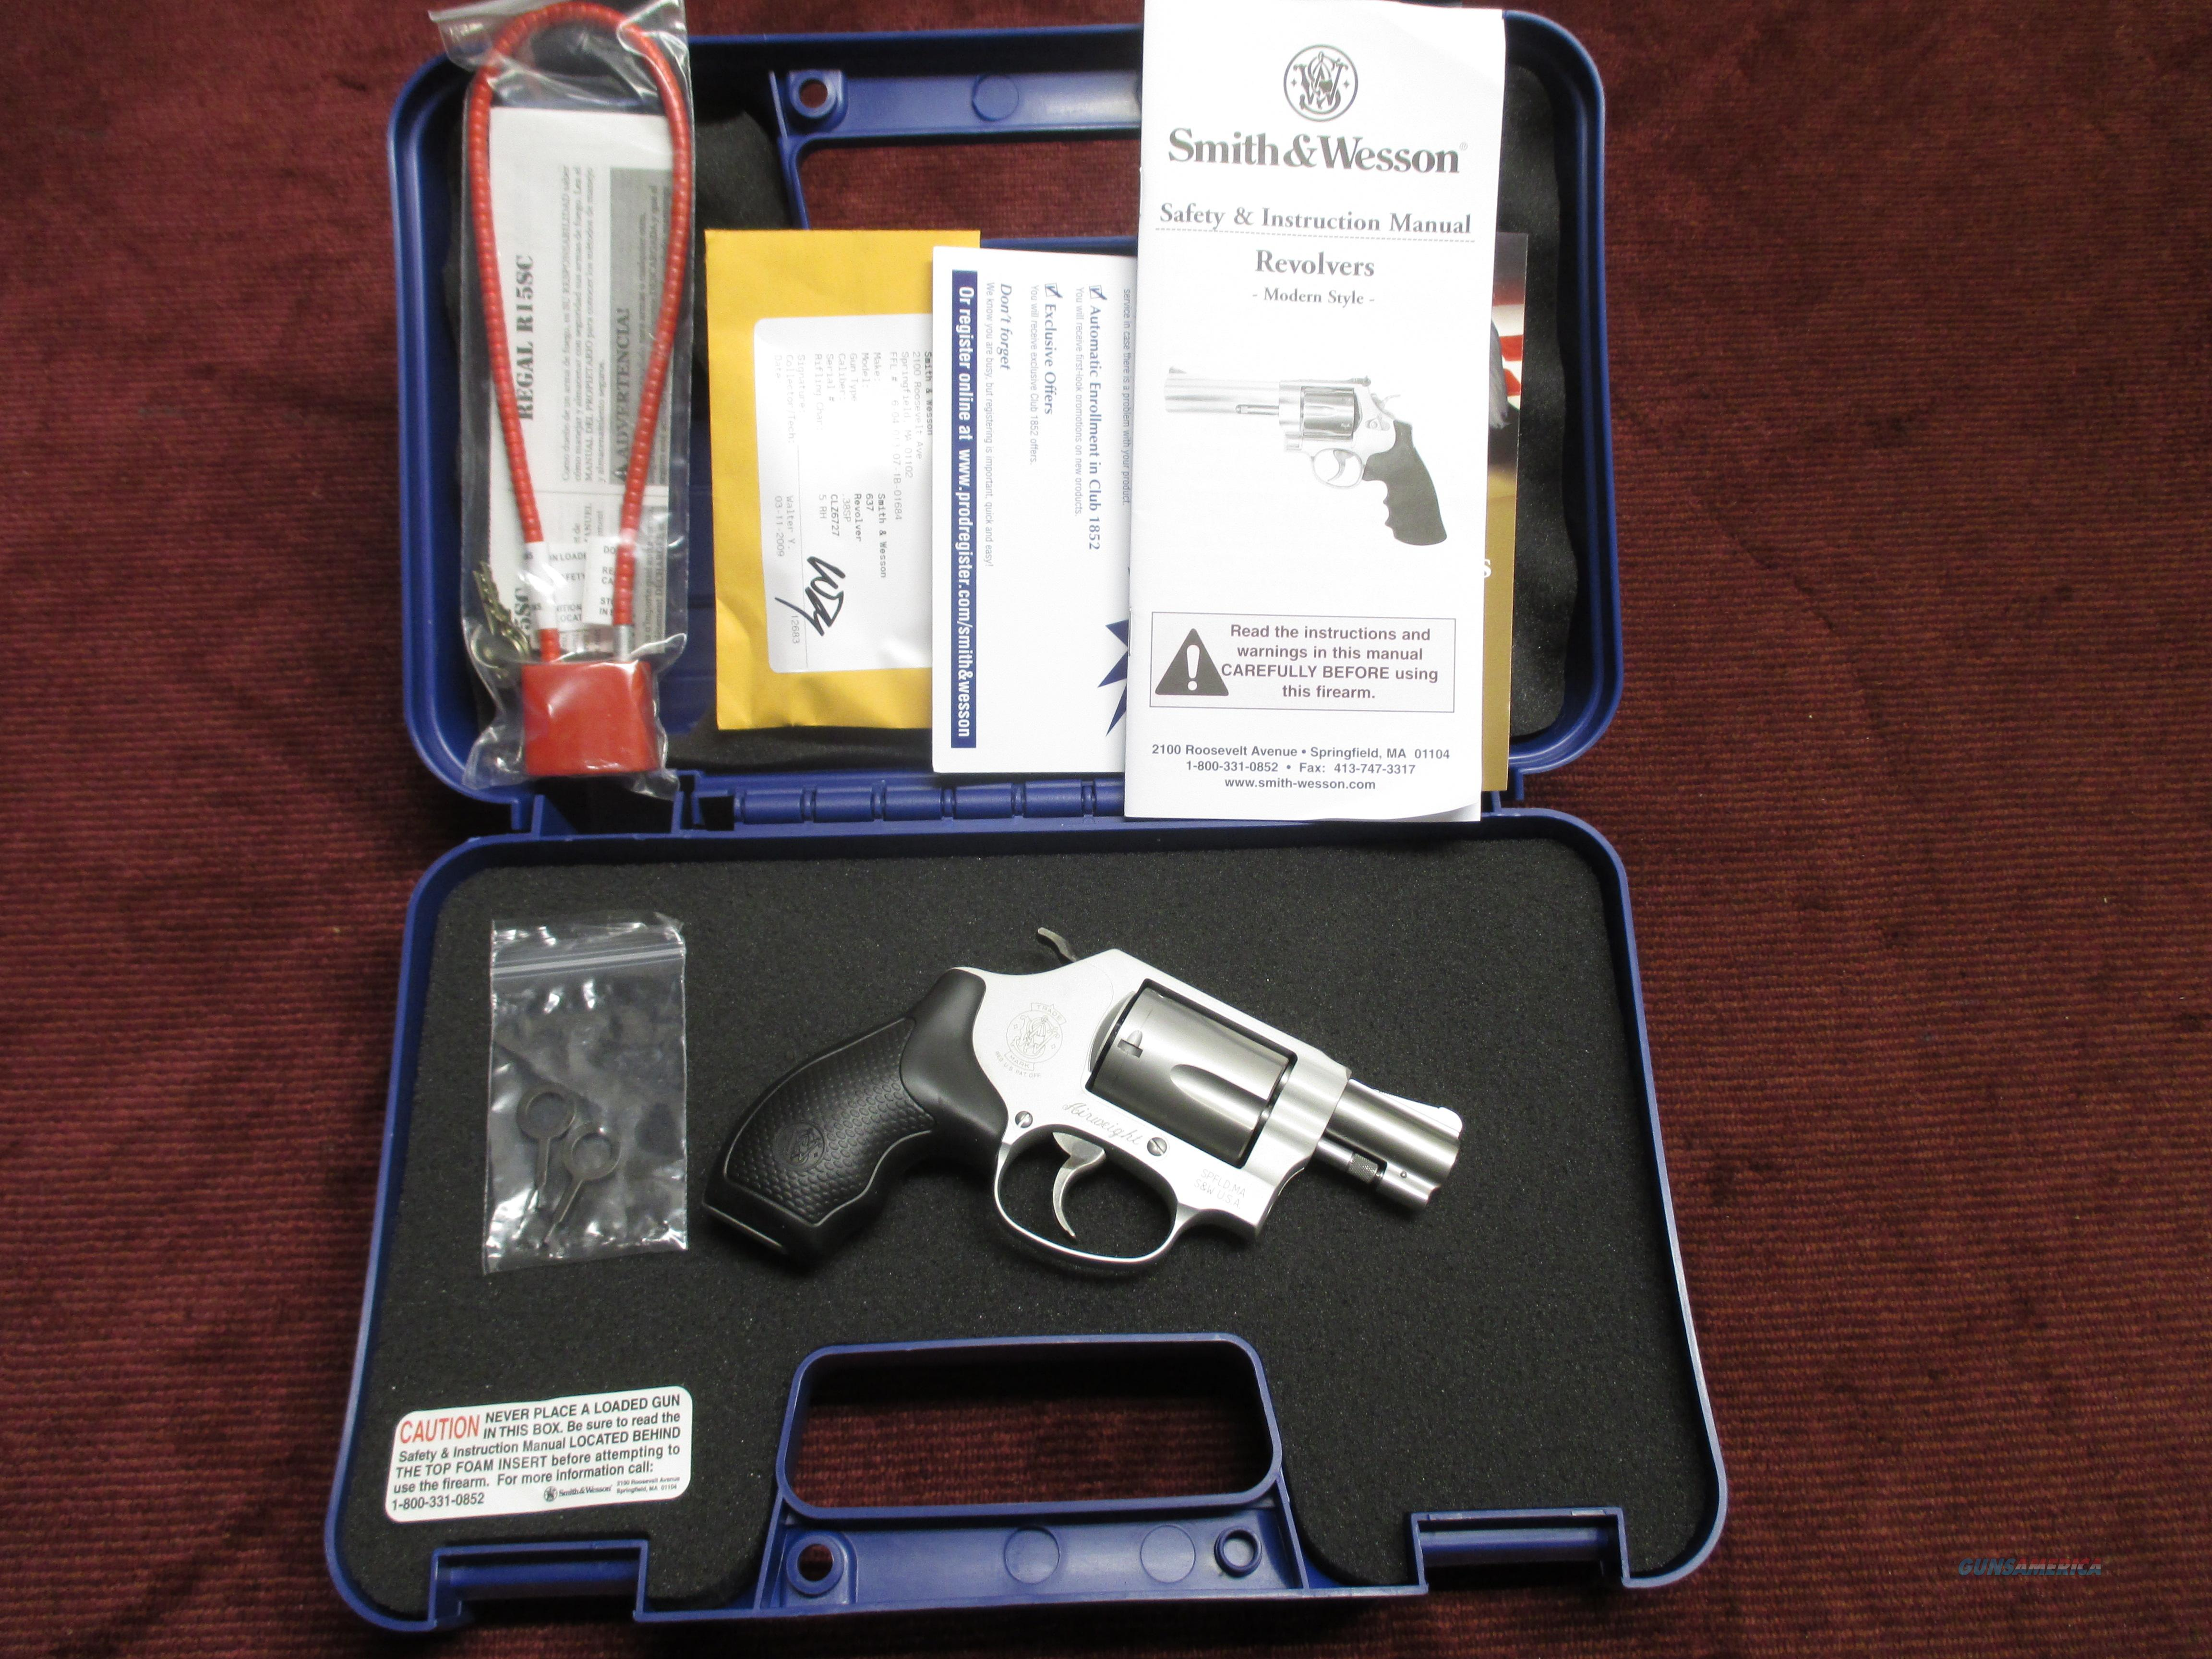 SMITH & WESSON 637-2 .38 SPL. +P - AS NEW IN BOX  Guns > Pistols > Smith & Wesson Revolvers > Pocket Pistols